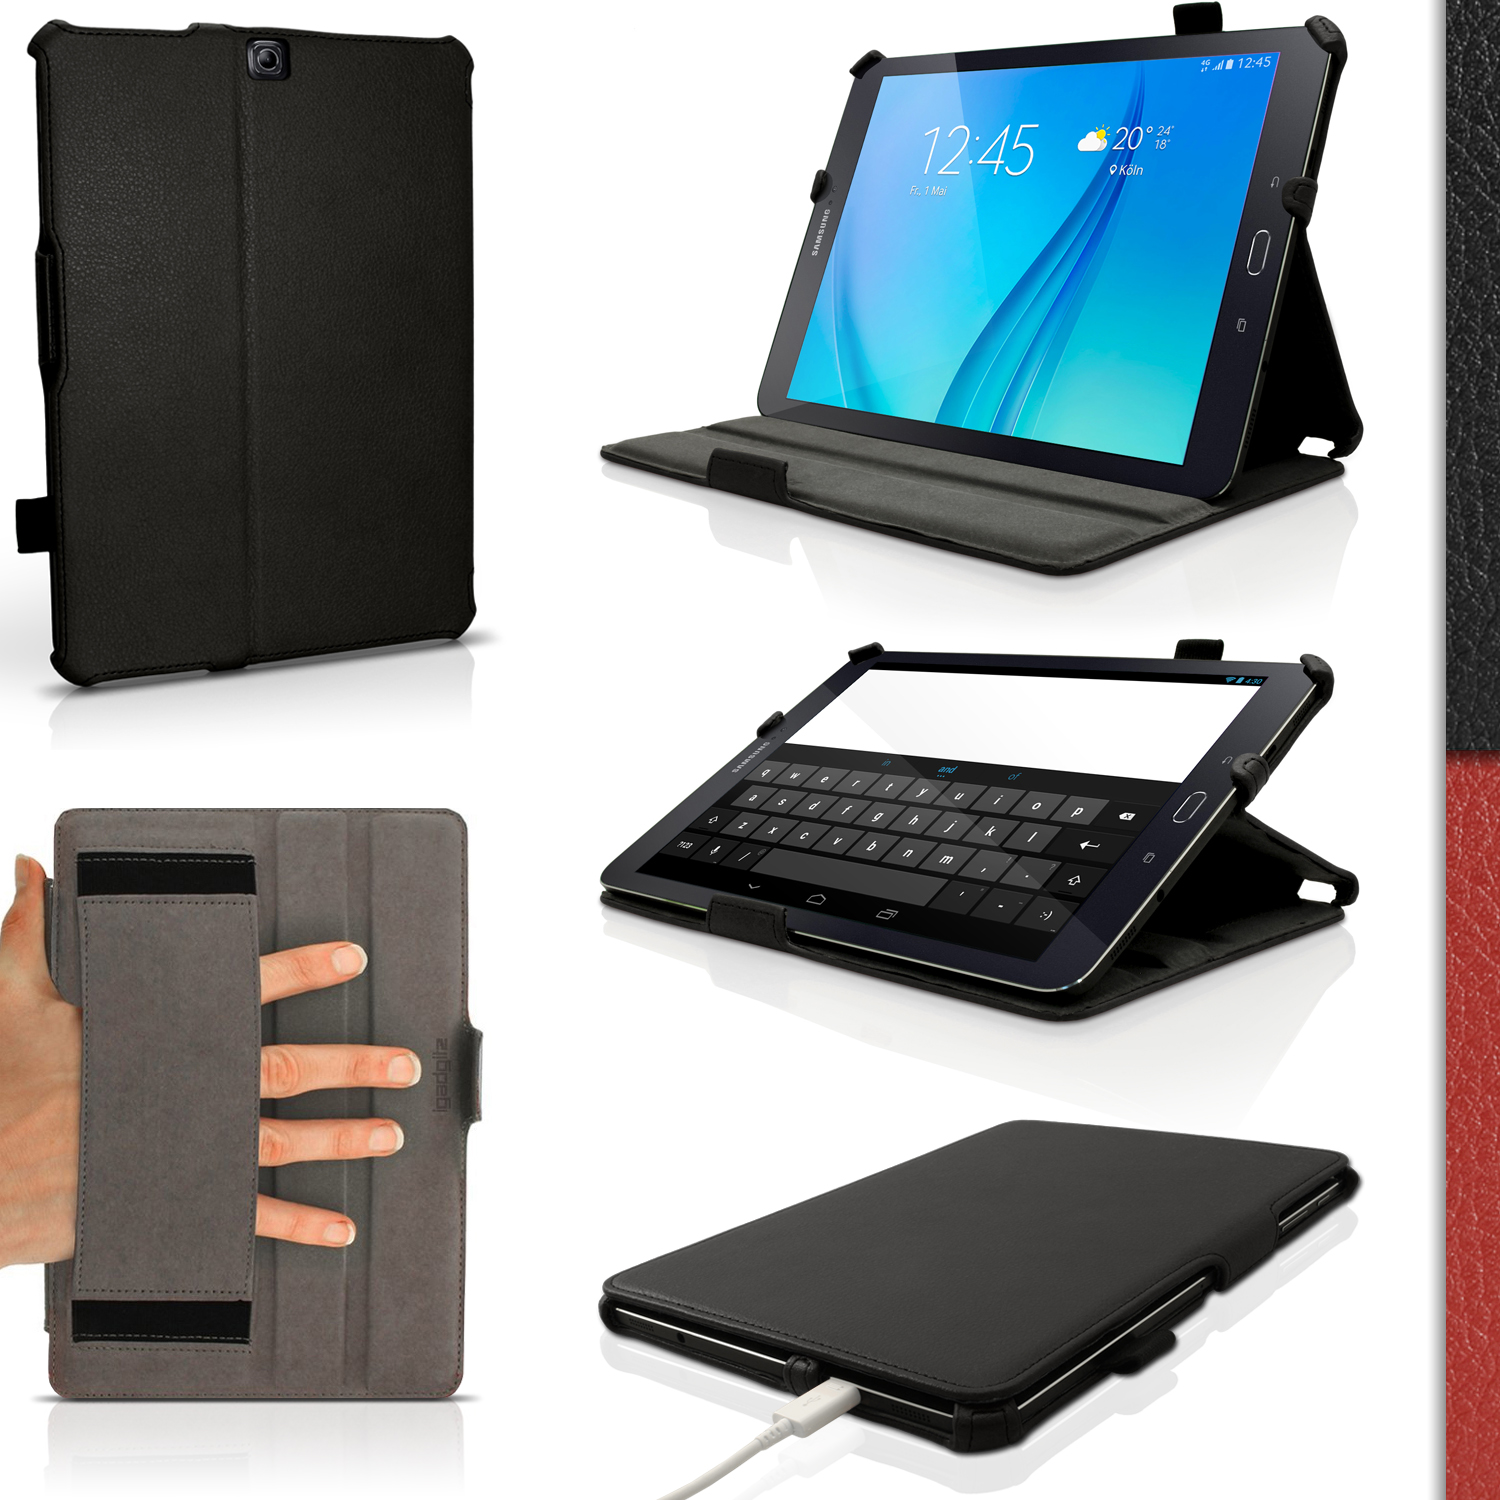 """iGadgitz PU Leather Case Cover for Samsung Galaxy Tab S2 9.7"""" SM-T810 with Stand + Sleep Wake + Screen Protector"""